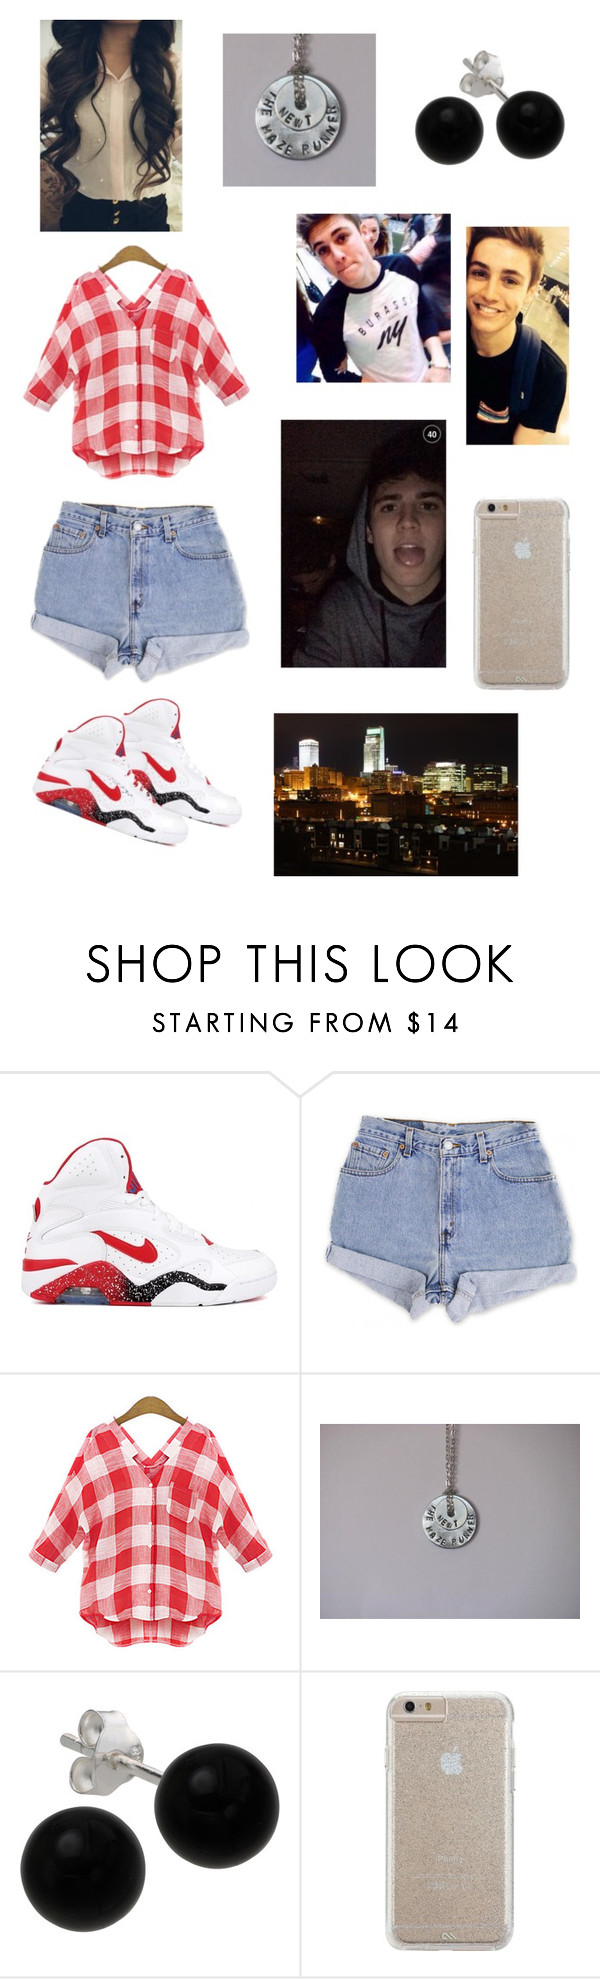 """Date in Omaha with Sammy Wilk"" by kailyr24 ❤ liked on Polyvore featuring NIKE, Levi's, Bridge Jewelry and Case-Mate"